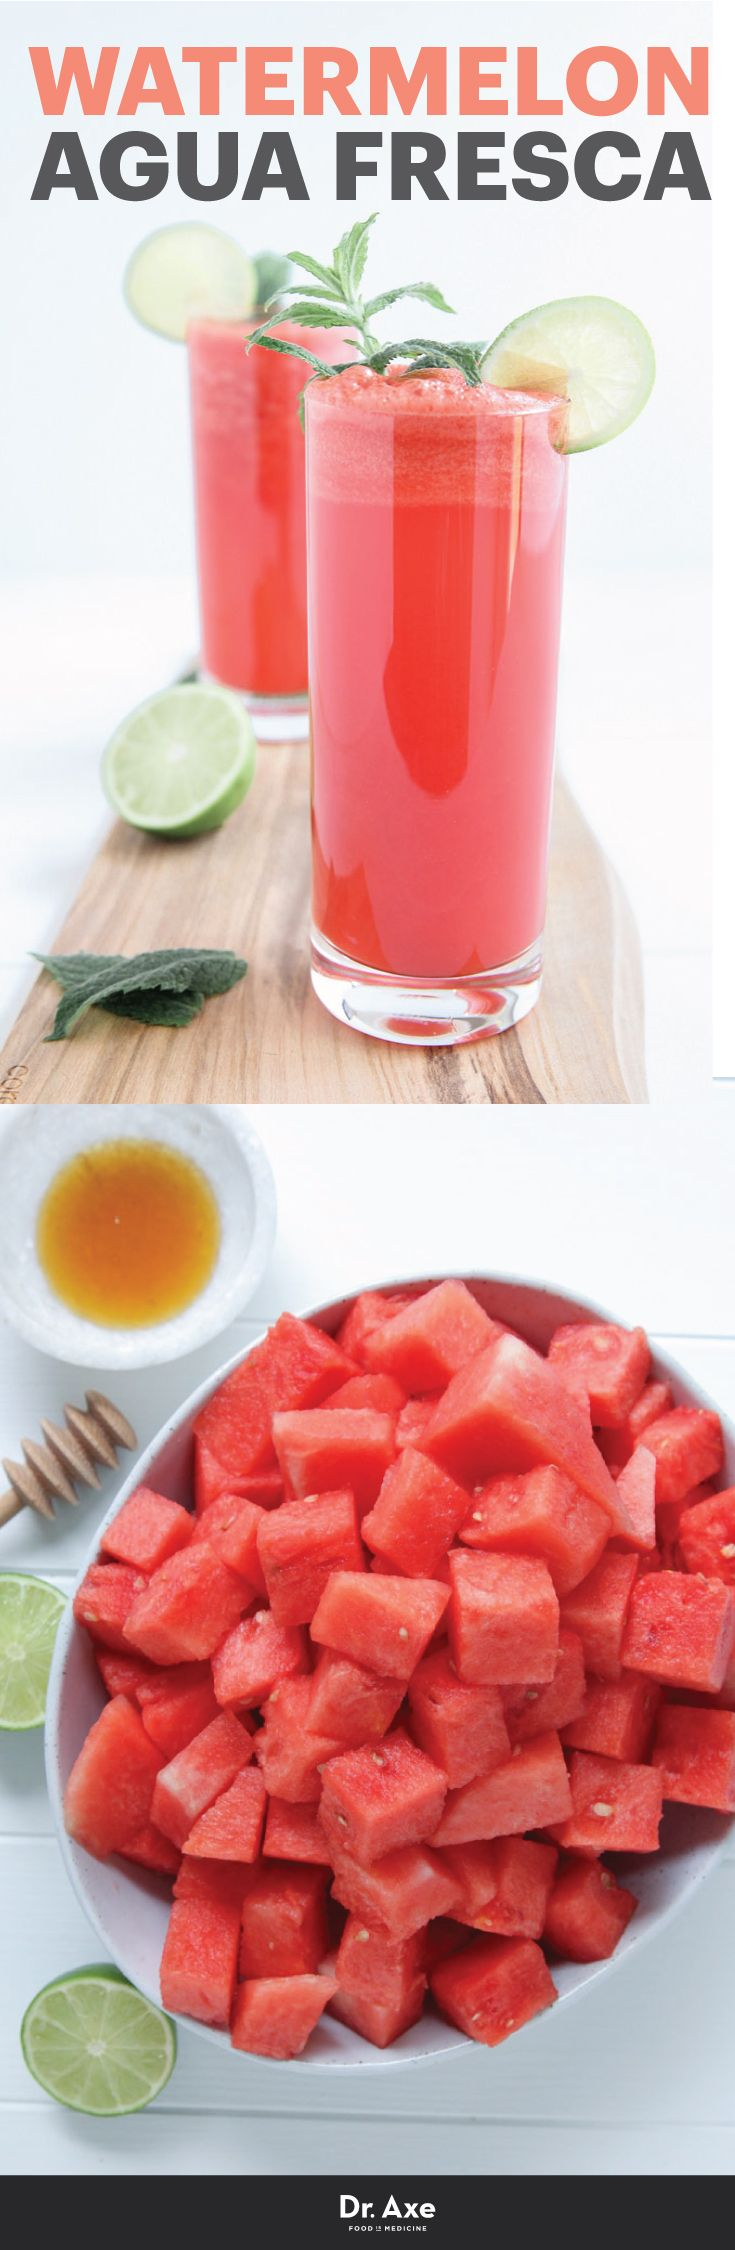 The Perfect Summer Drink - Watermelon Agua Fresca